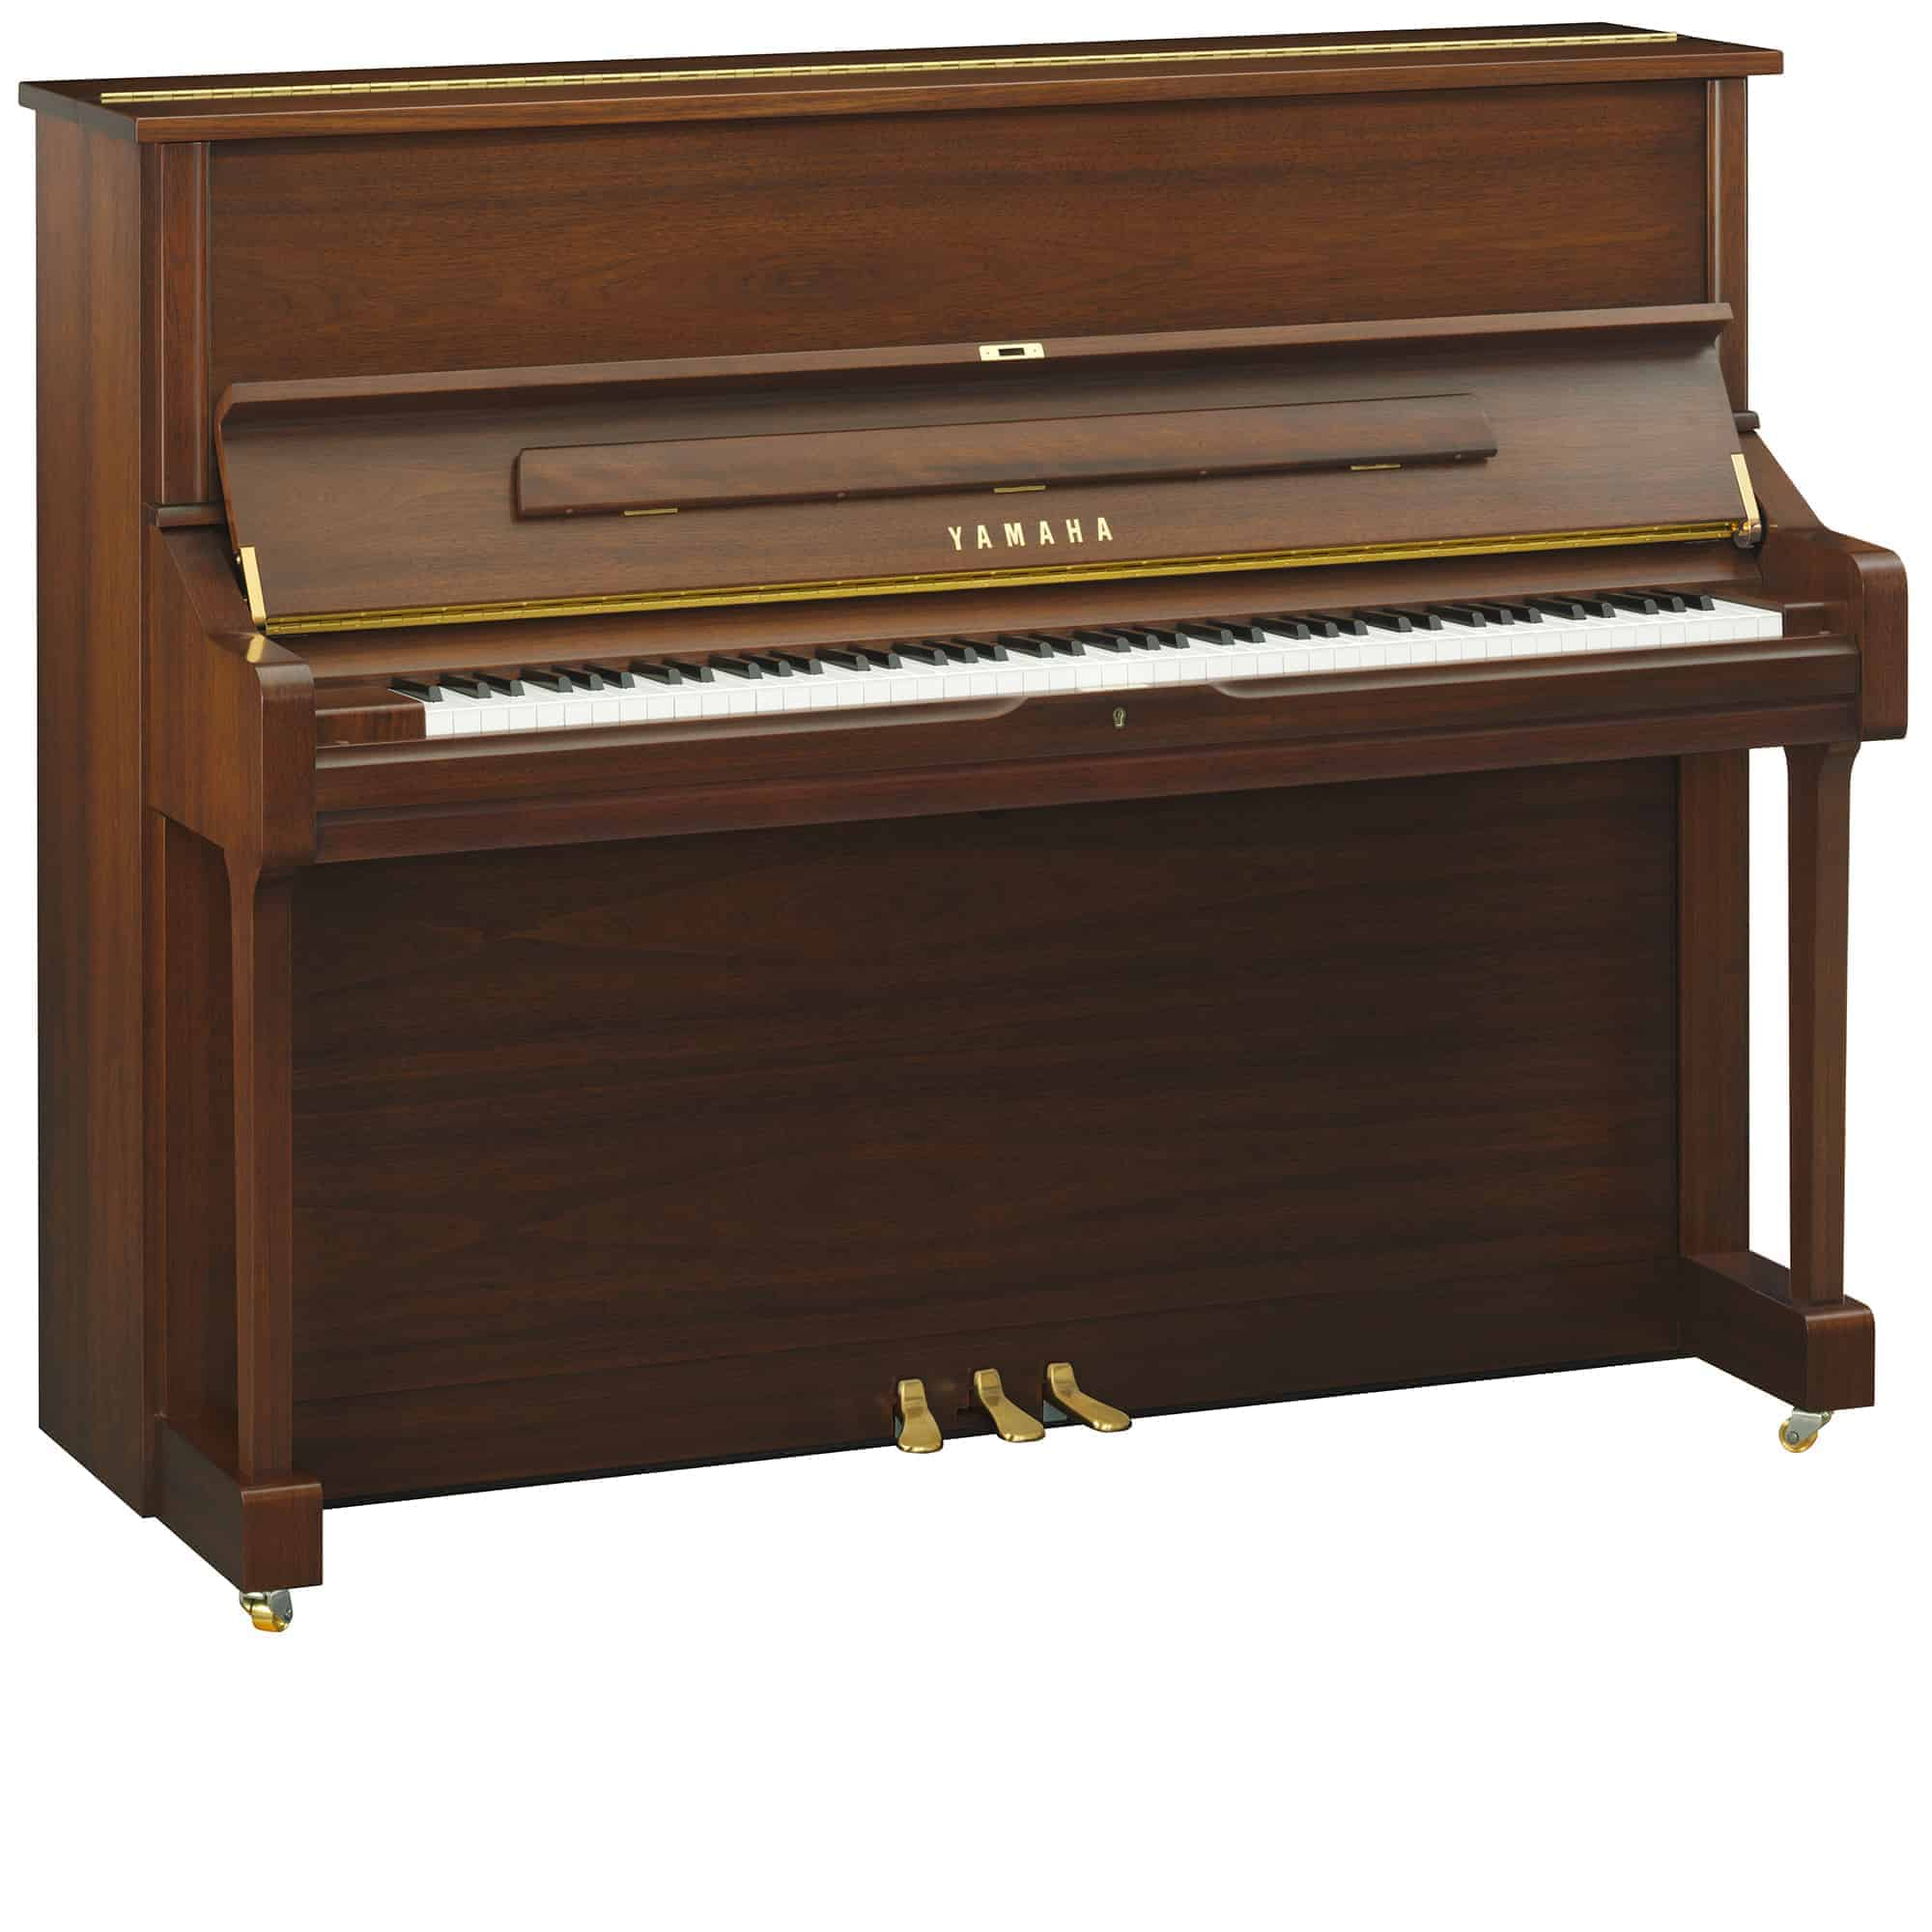 Yamaha u1 upright piano 48 tall piano gallery of utah for Yamaha piano upright